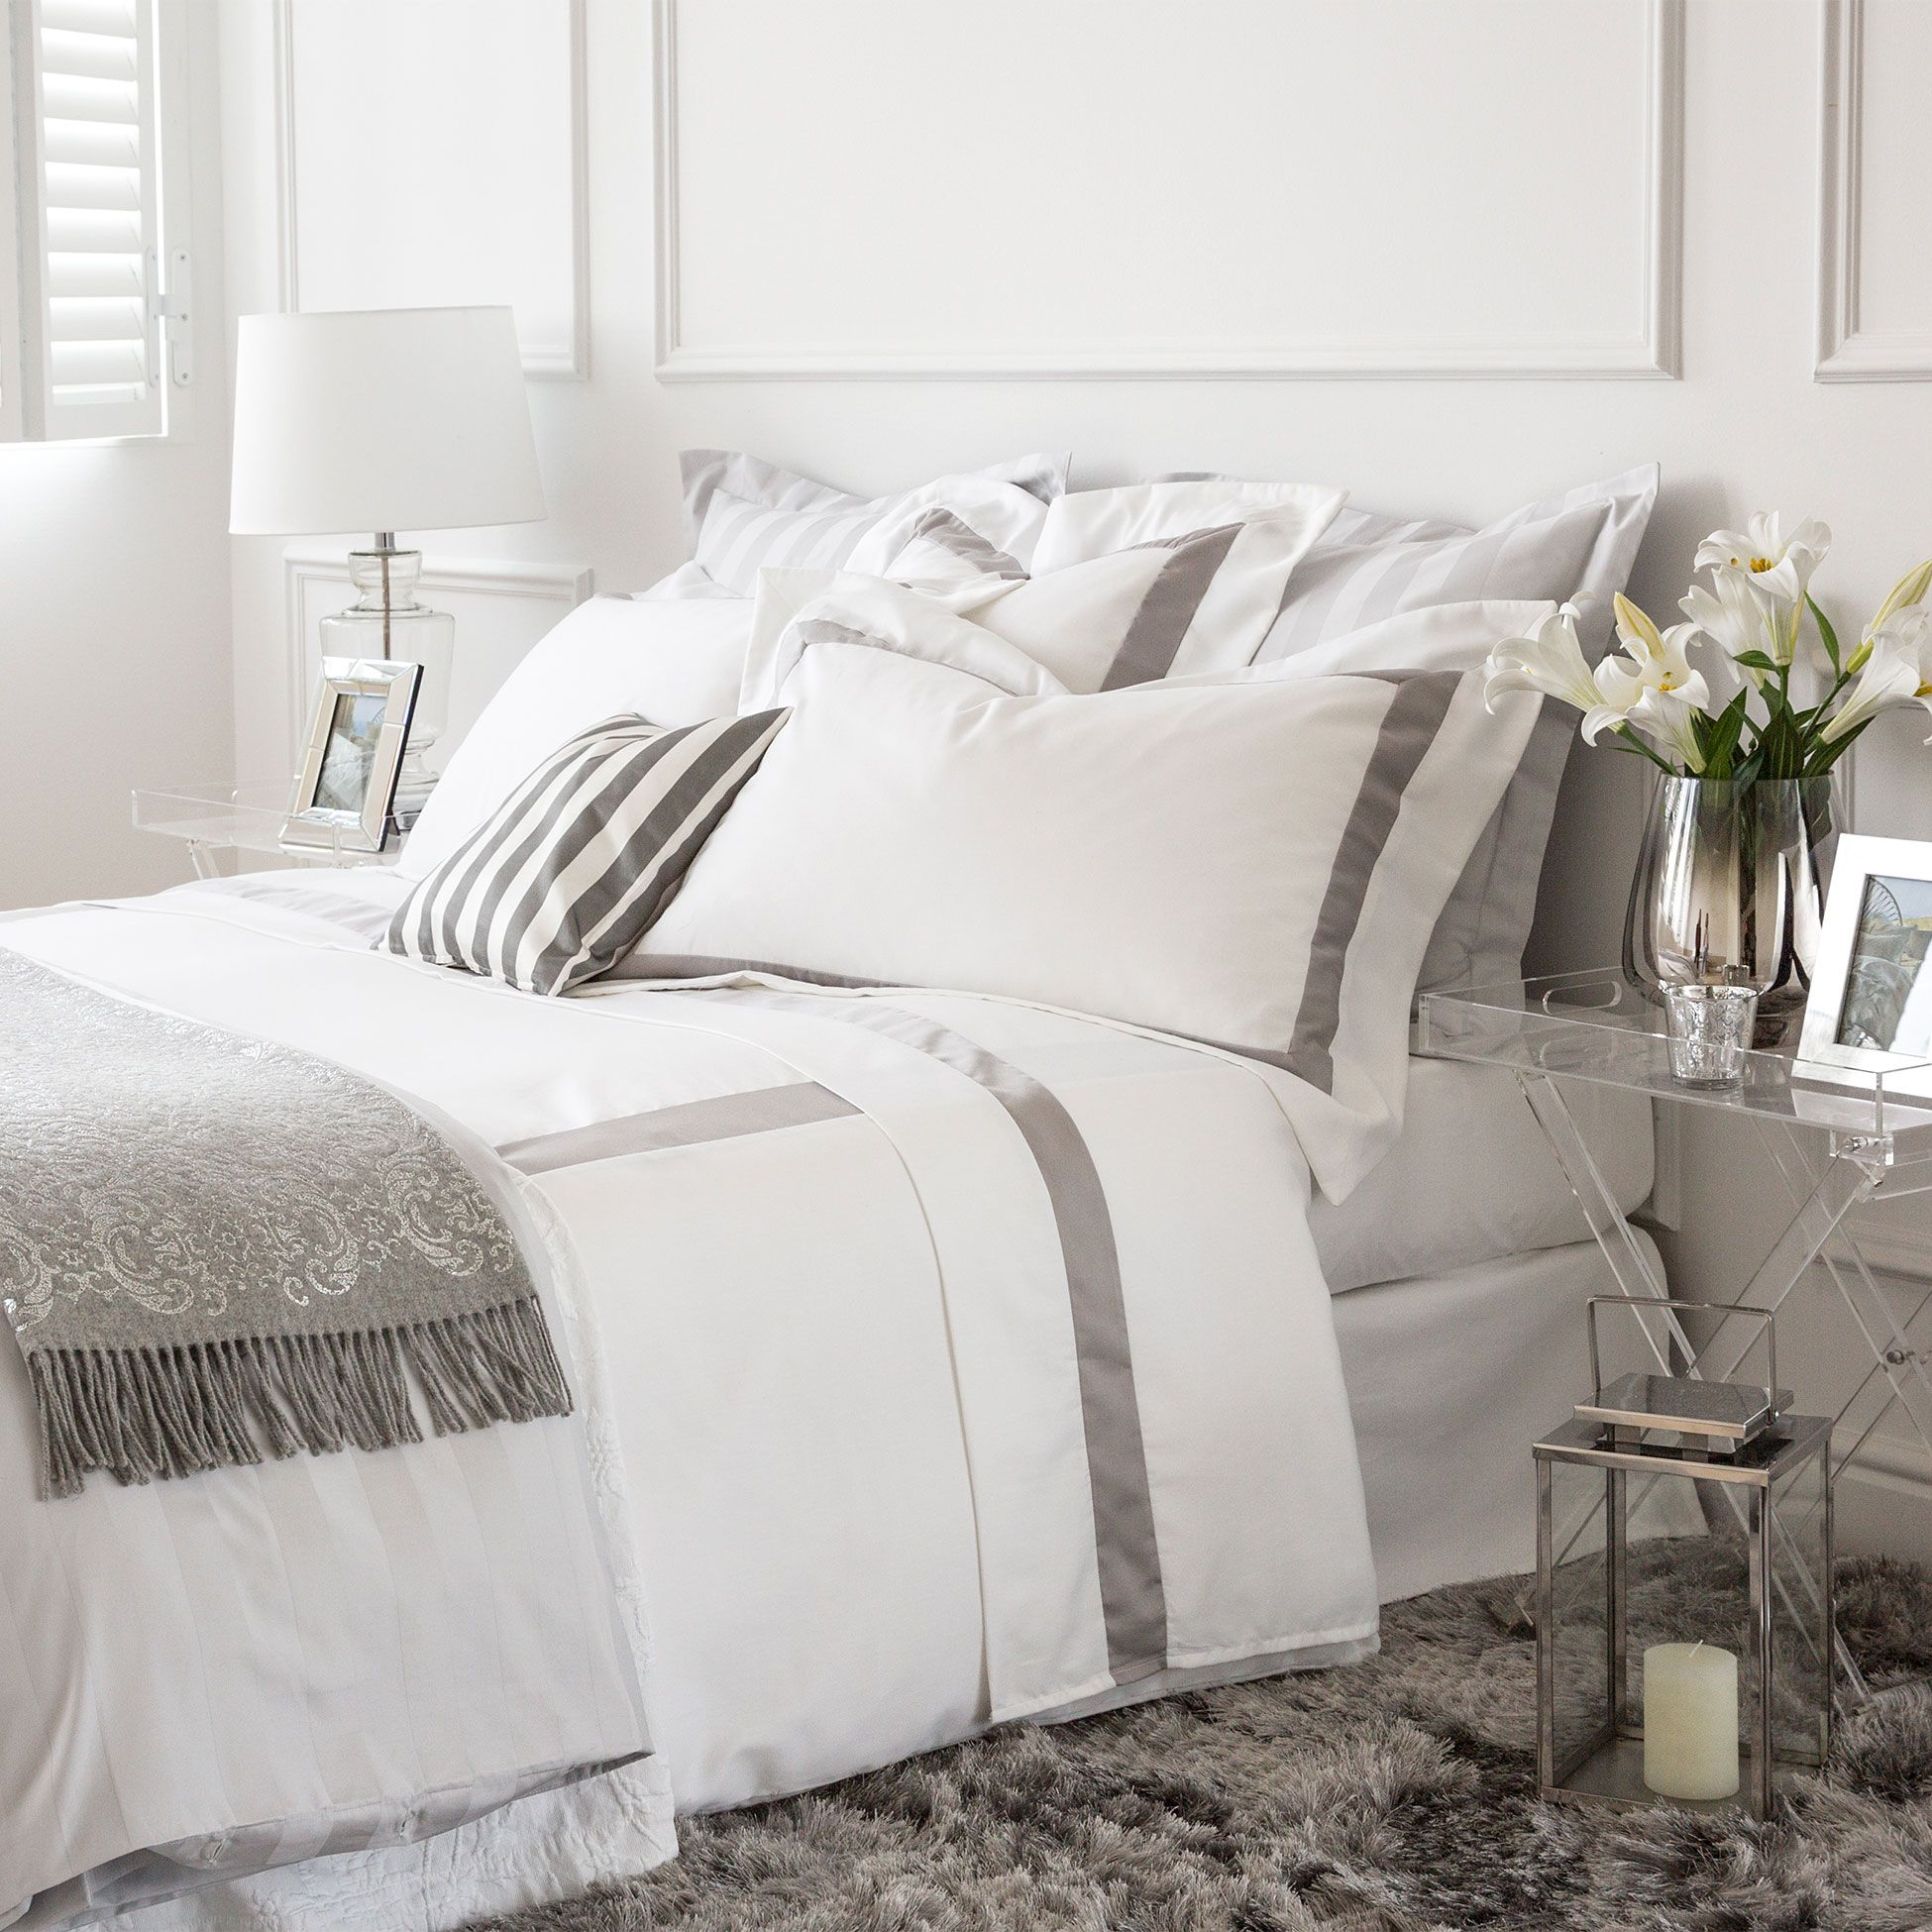 Edredon Nordico Zara Home.Satin Bed Linen With Contrasting Ribbon Bed Linen Bedroom Zara